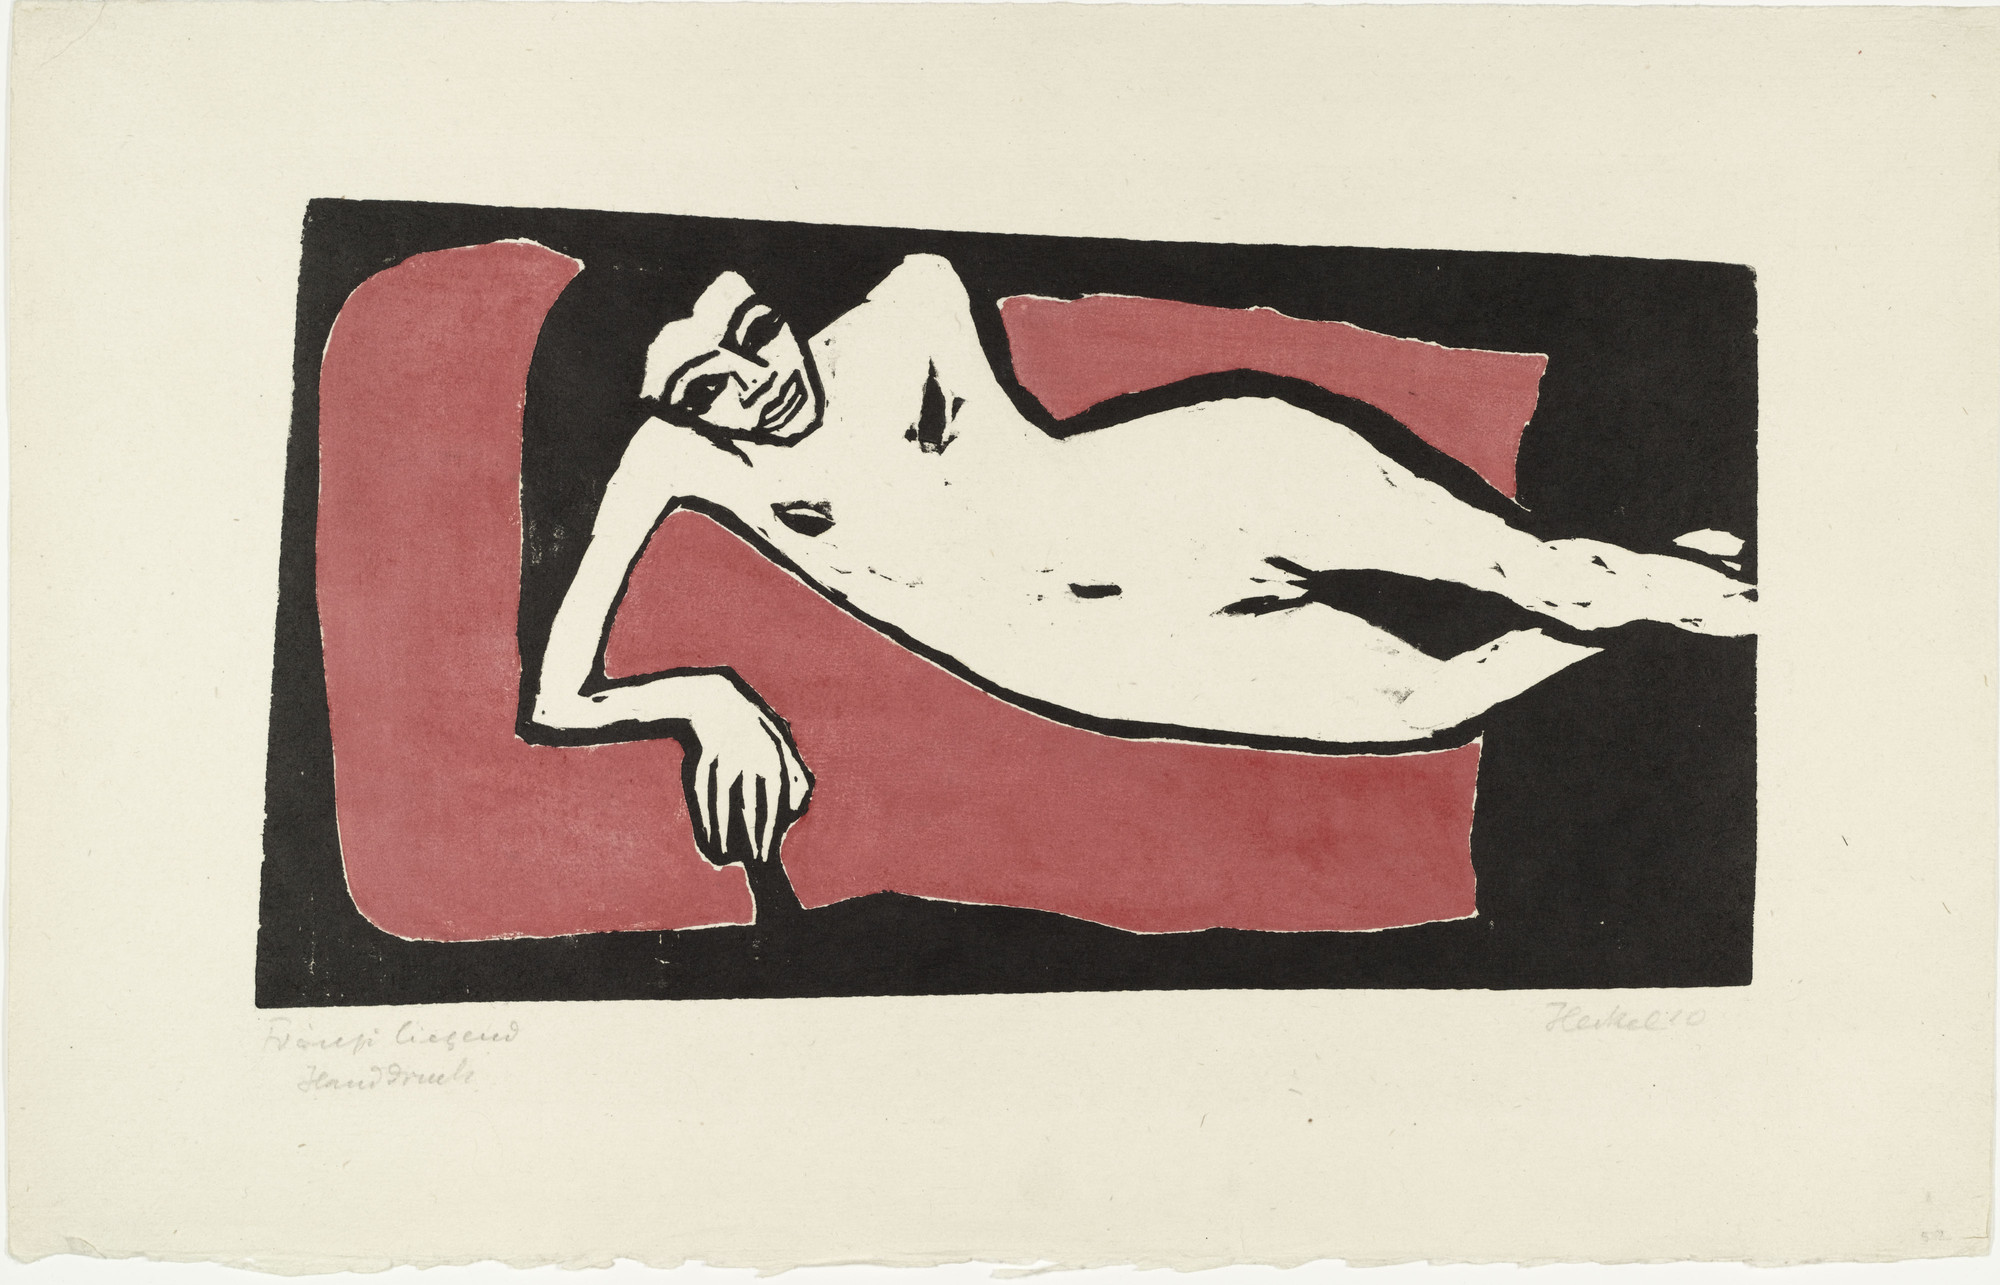 Erich Heckel. Fränzi Reclining (Fränzi liegend). 1910. Woodcut. Composition: 8 15/16 × 16 9/16″ (22.6 × 42.1 cm). Publisher: unknown. Printer: probably the artist, Dresden. Edition: unknown. The Museum of Modern Art, New York. Gift of Mr. and Mrs. Otto Gerson. © 2001 Artists Rights Society (ARS), New York/VG Bild-Kunst, Bonn